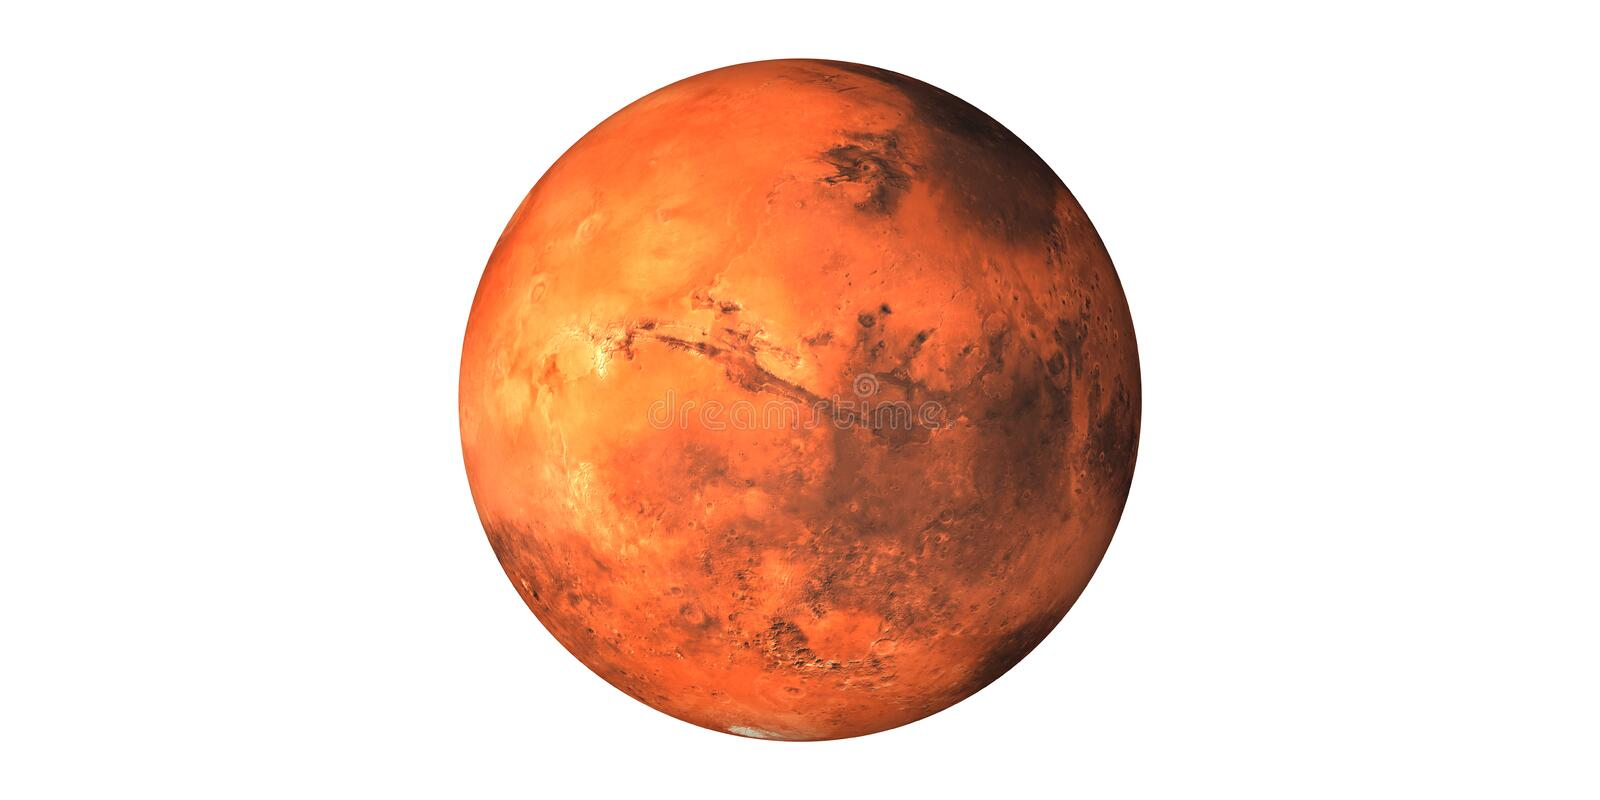 Mars the red planet seen from space stock photo